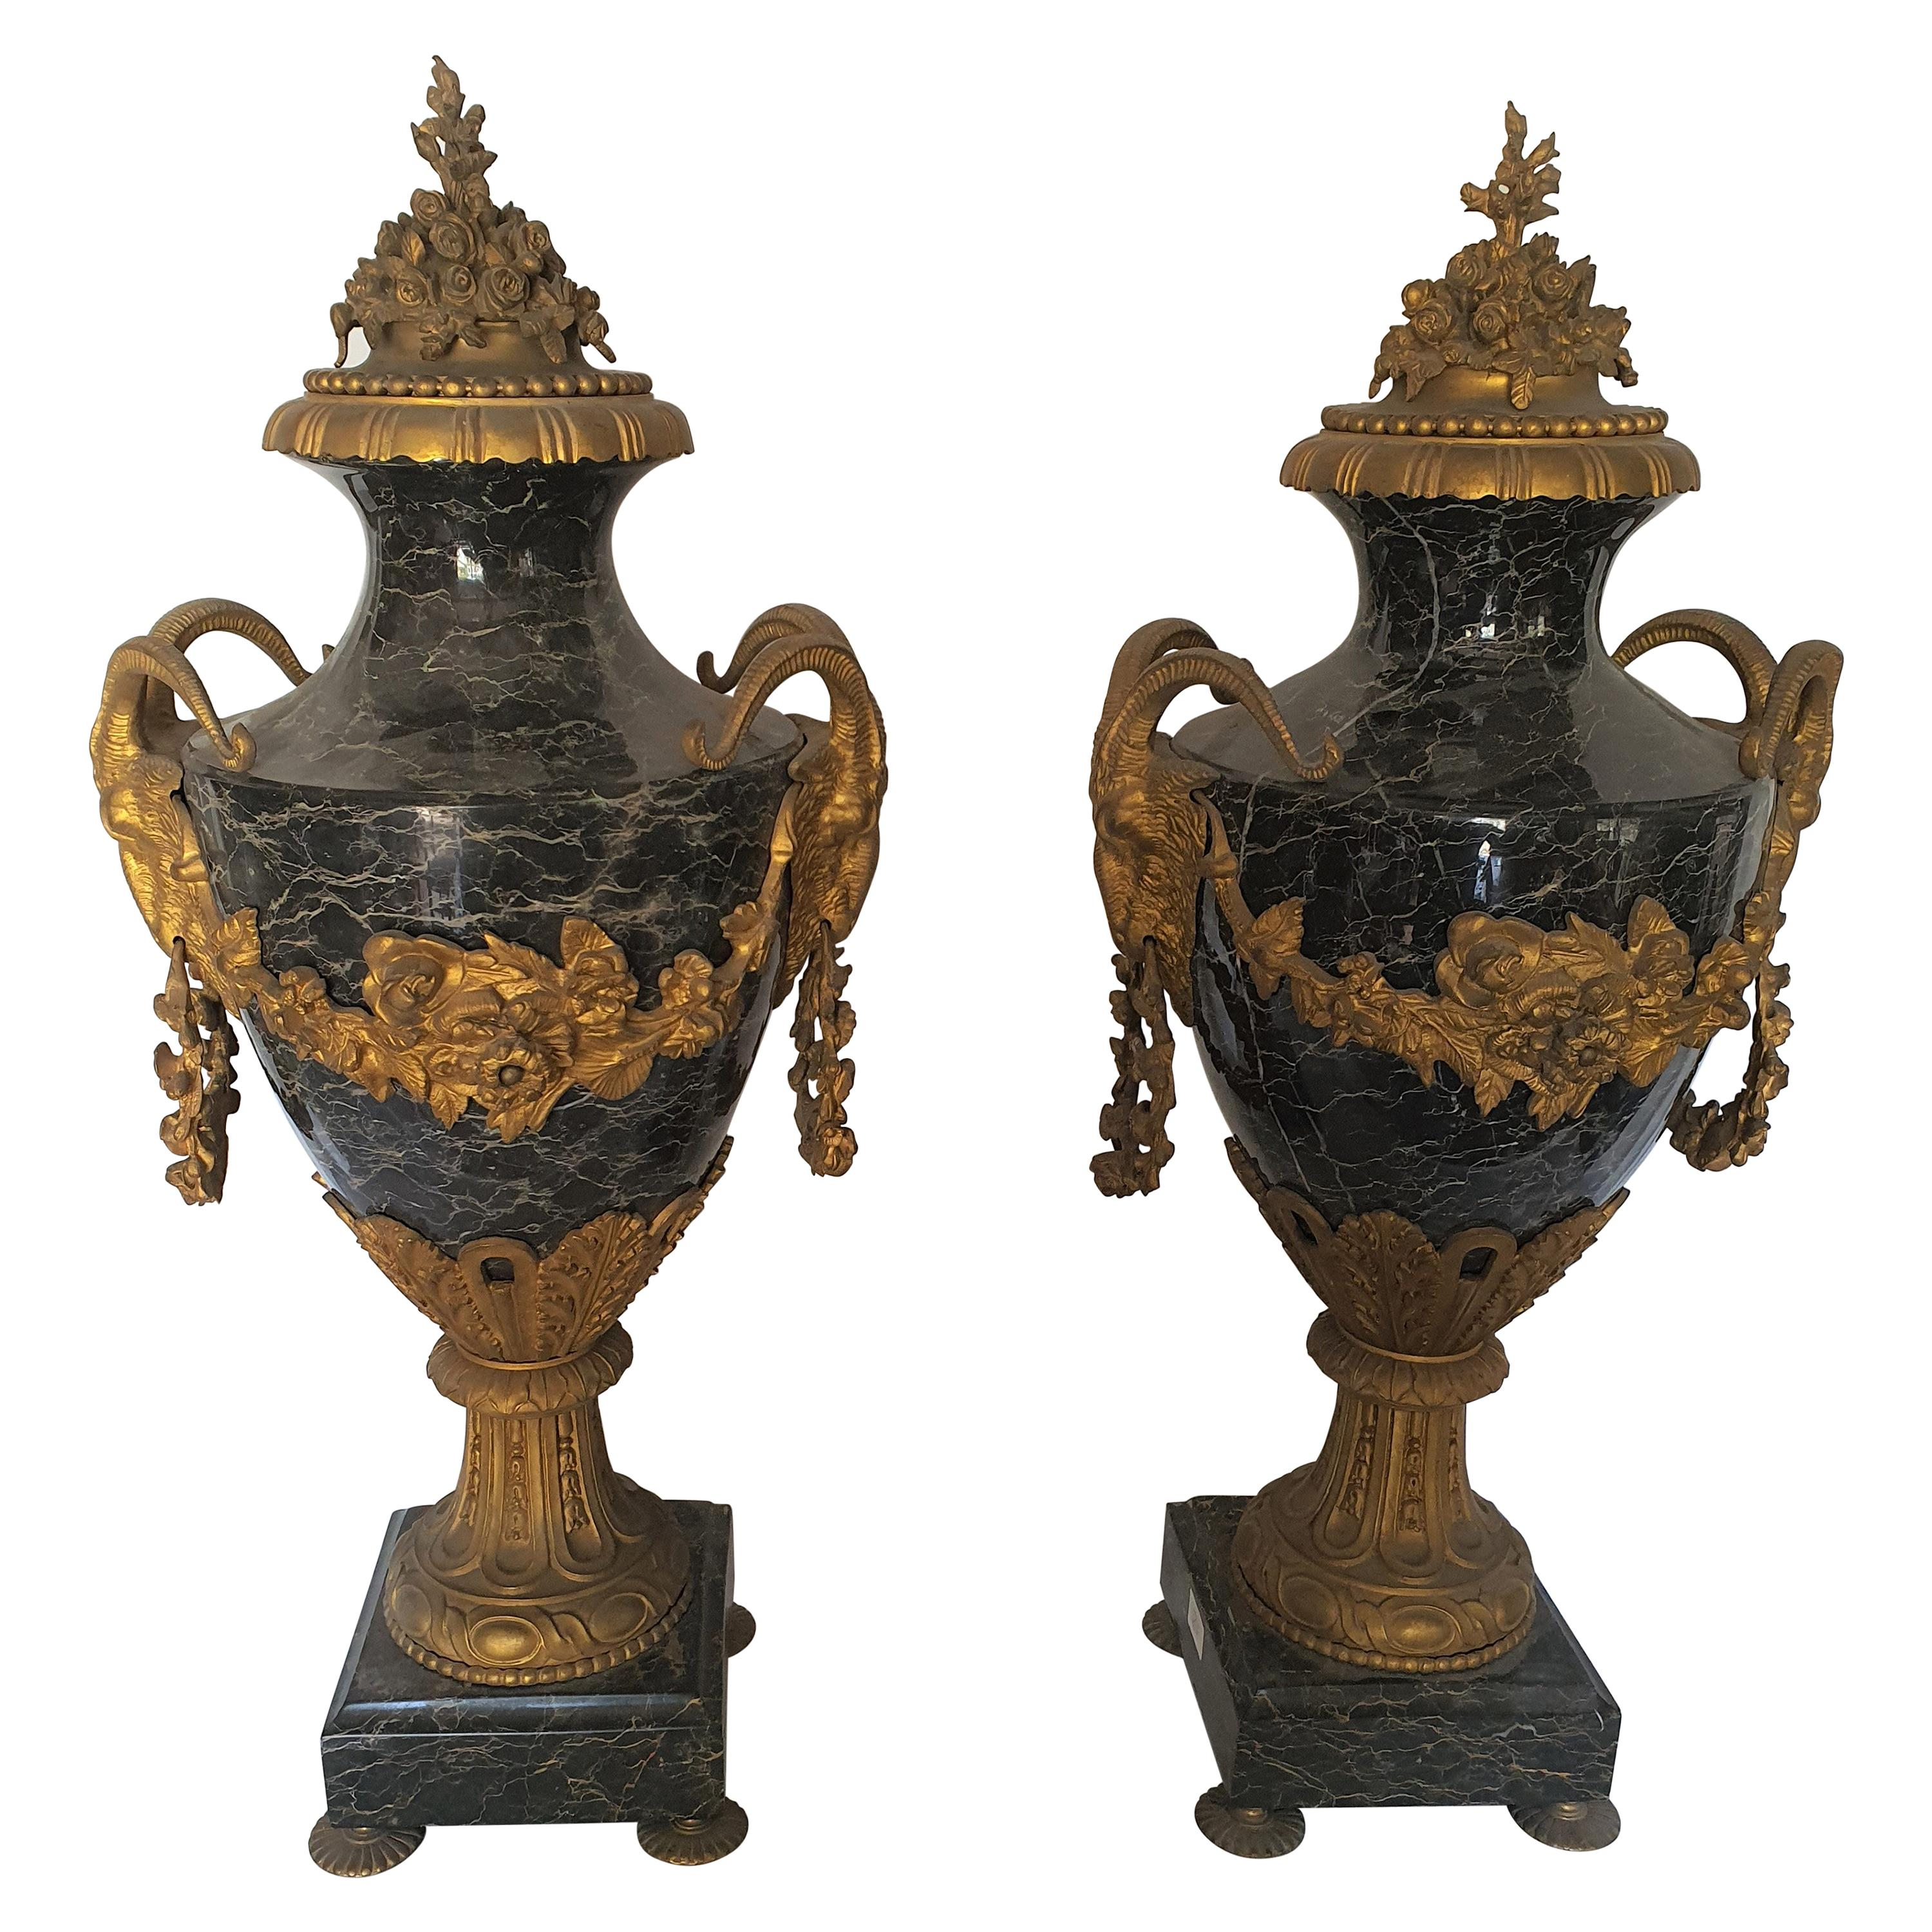 19th Century Pair of Marble Vases, Finely Chiseled and Gilded Bronze